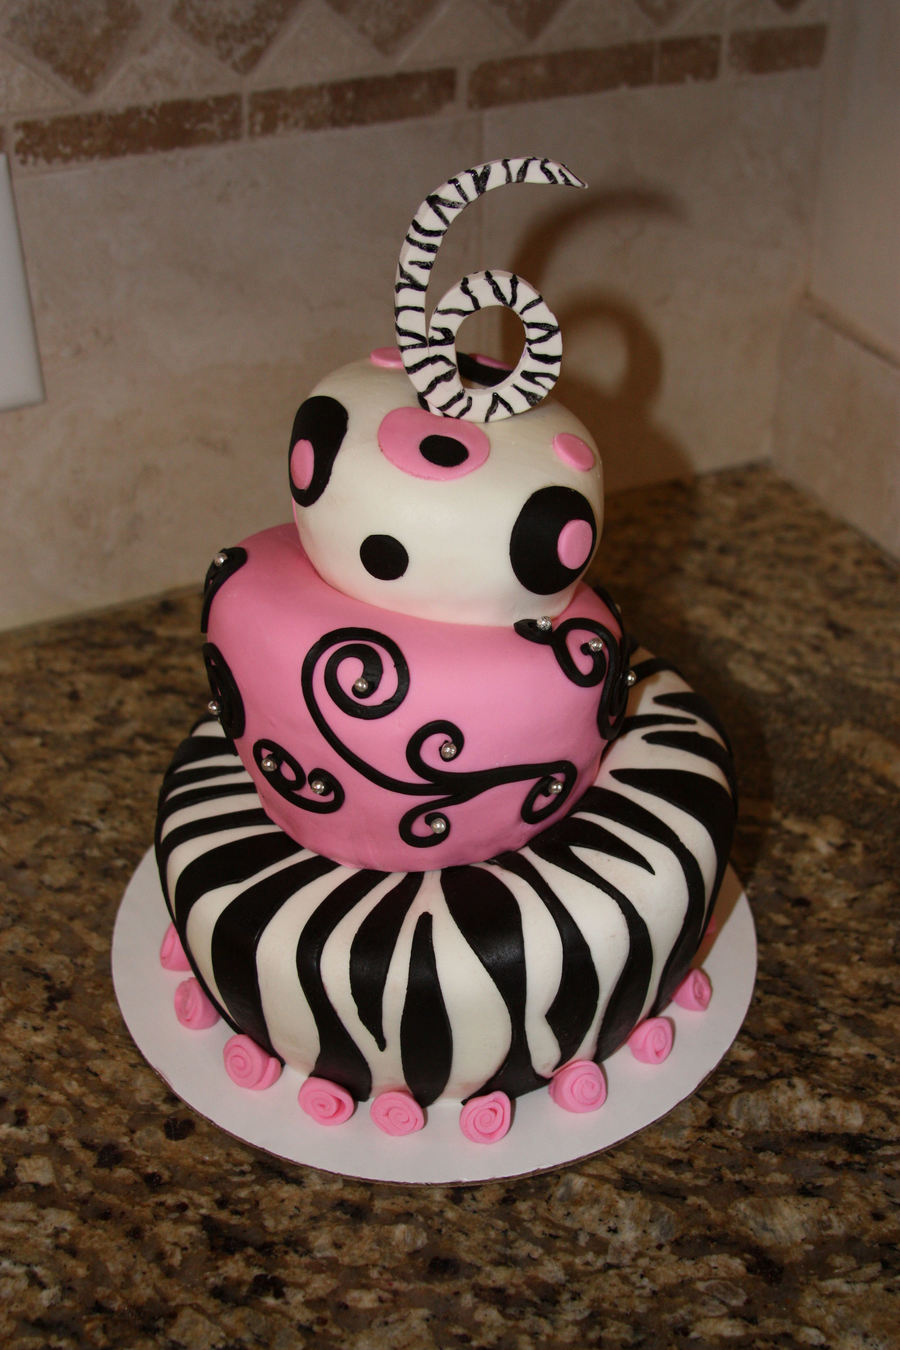 Topsy Turvy 3-Tiered Birthday Cake on Cake Central